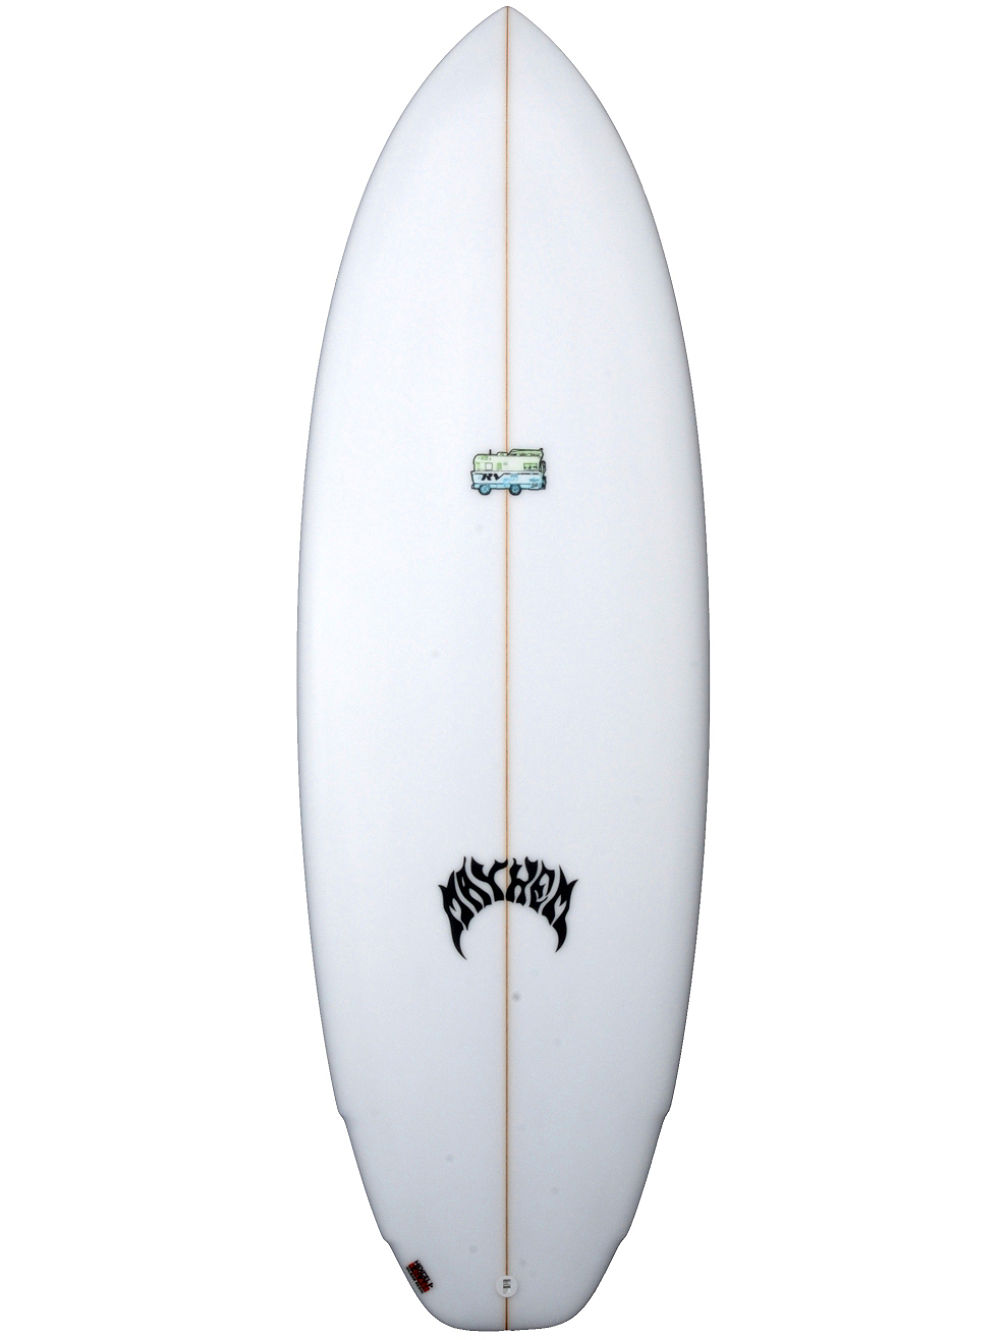 RV 5'3 Surfboard